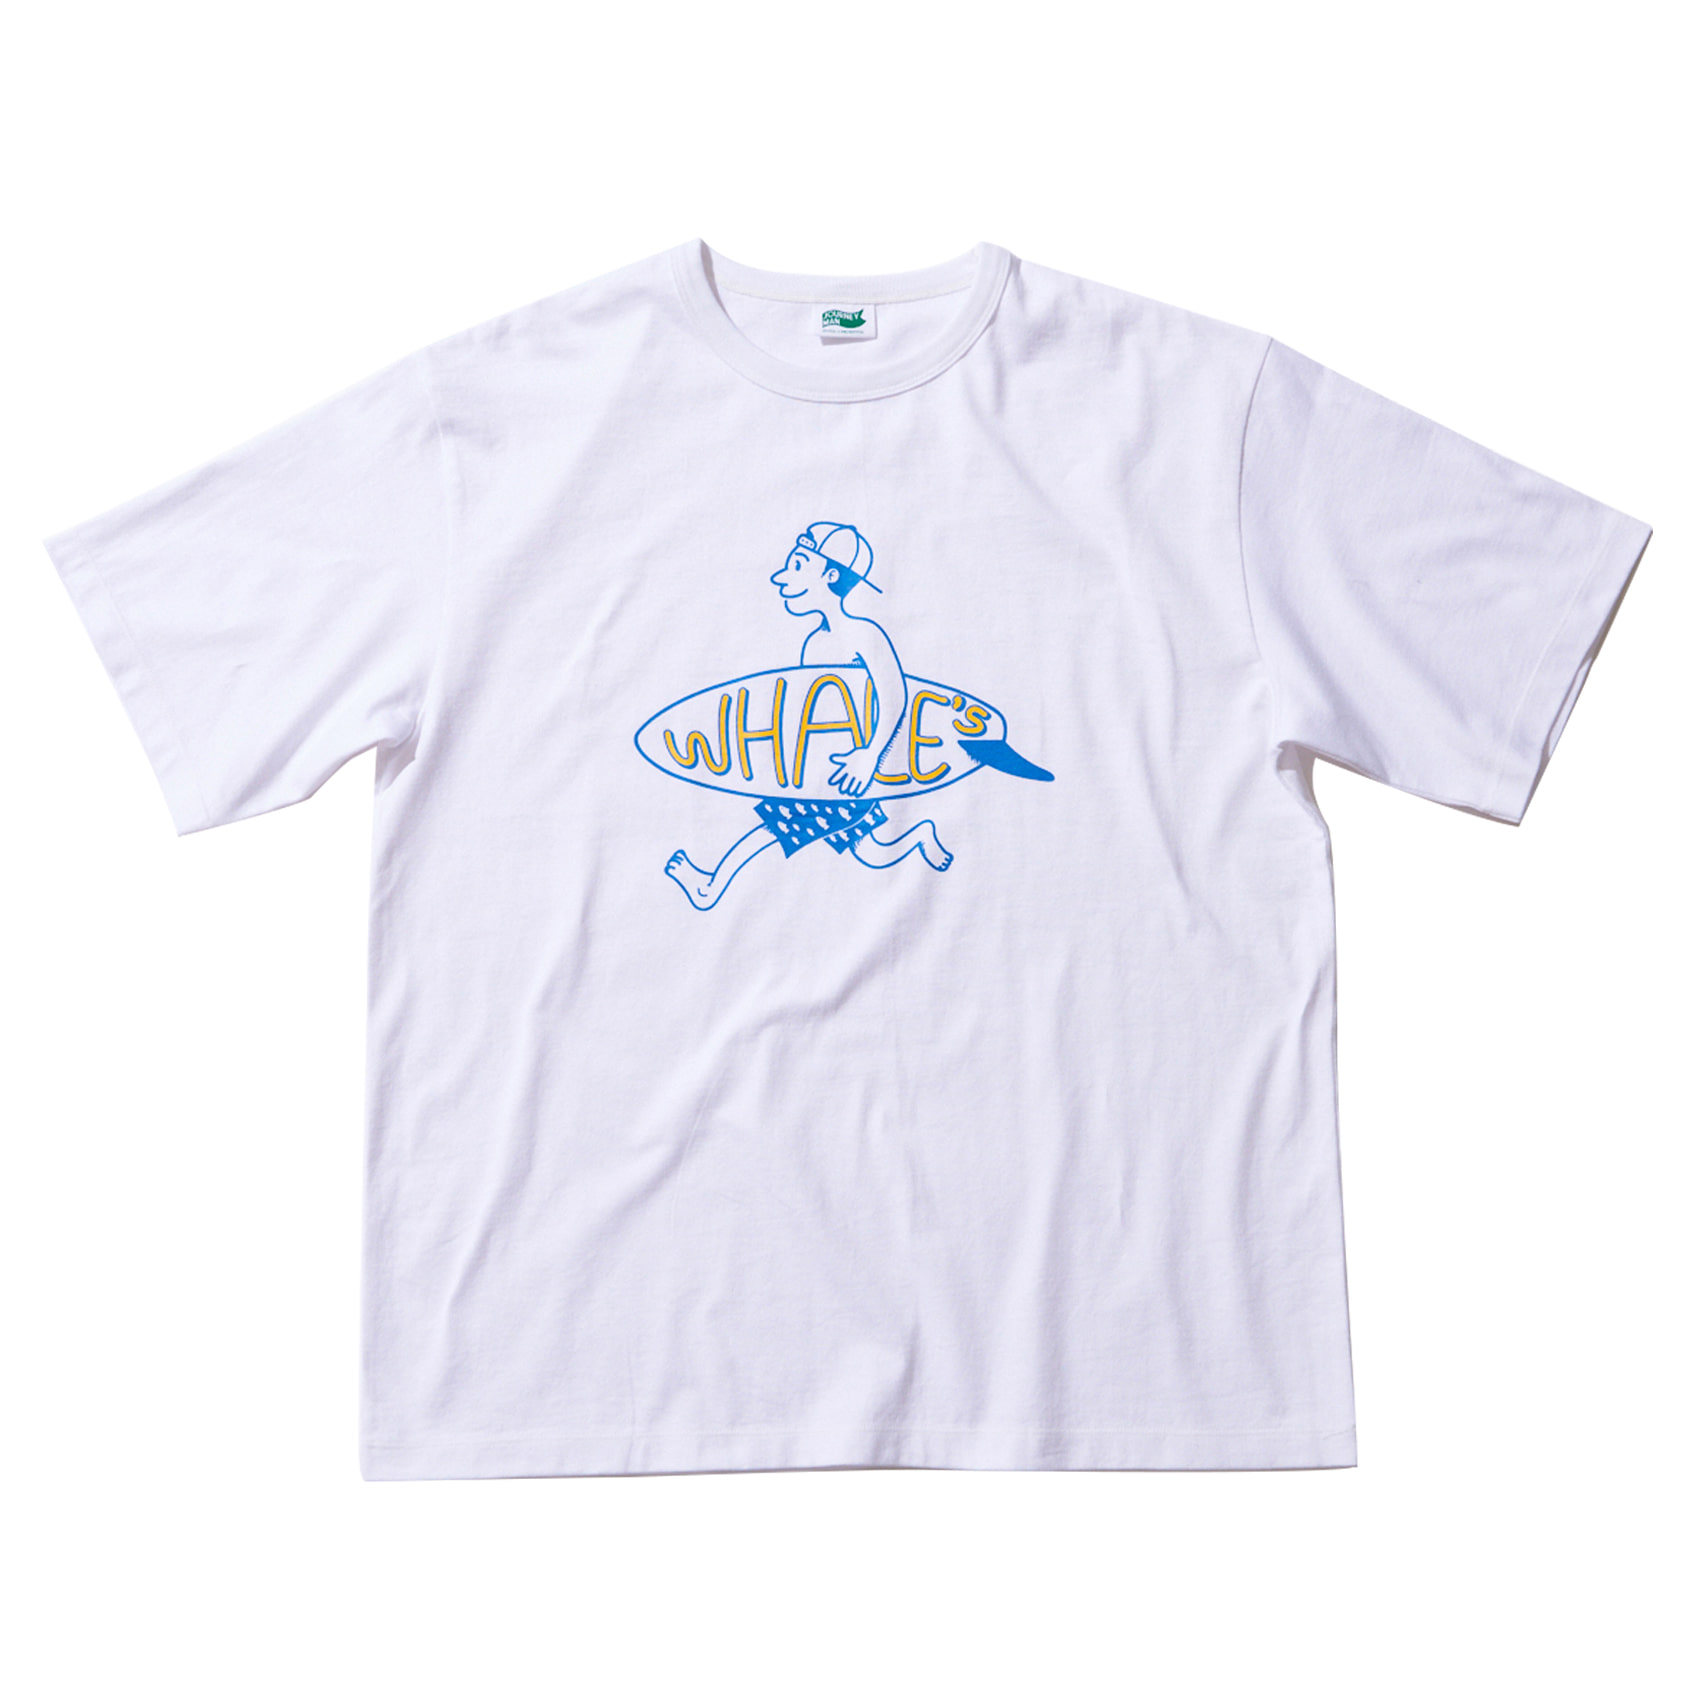 WHALES SURFERMAN2 T SHIRT - WHITE